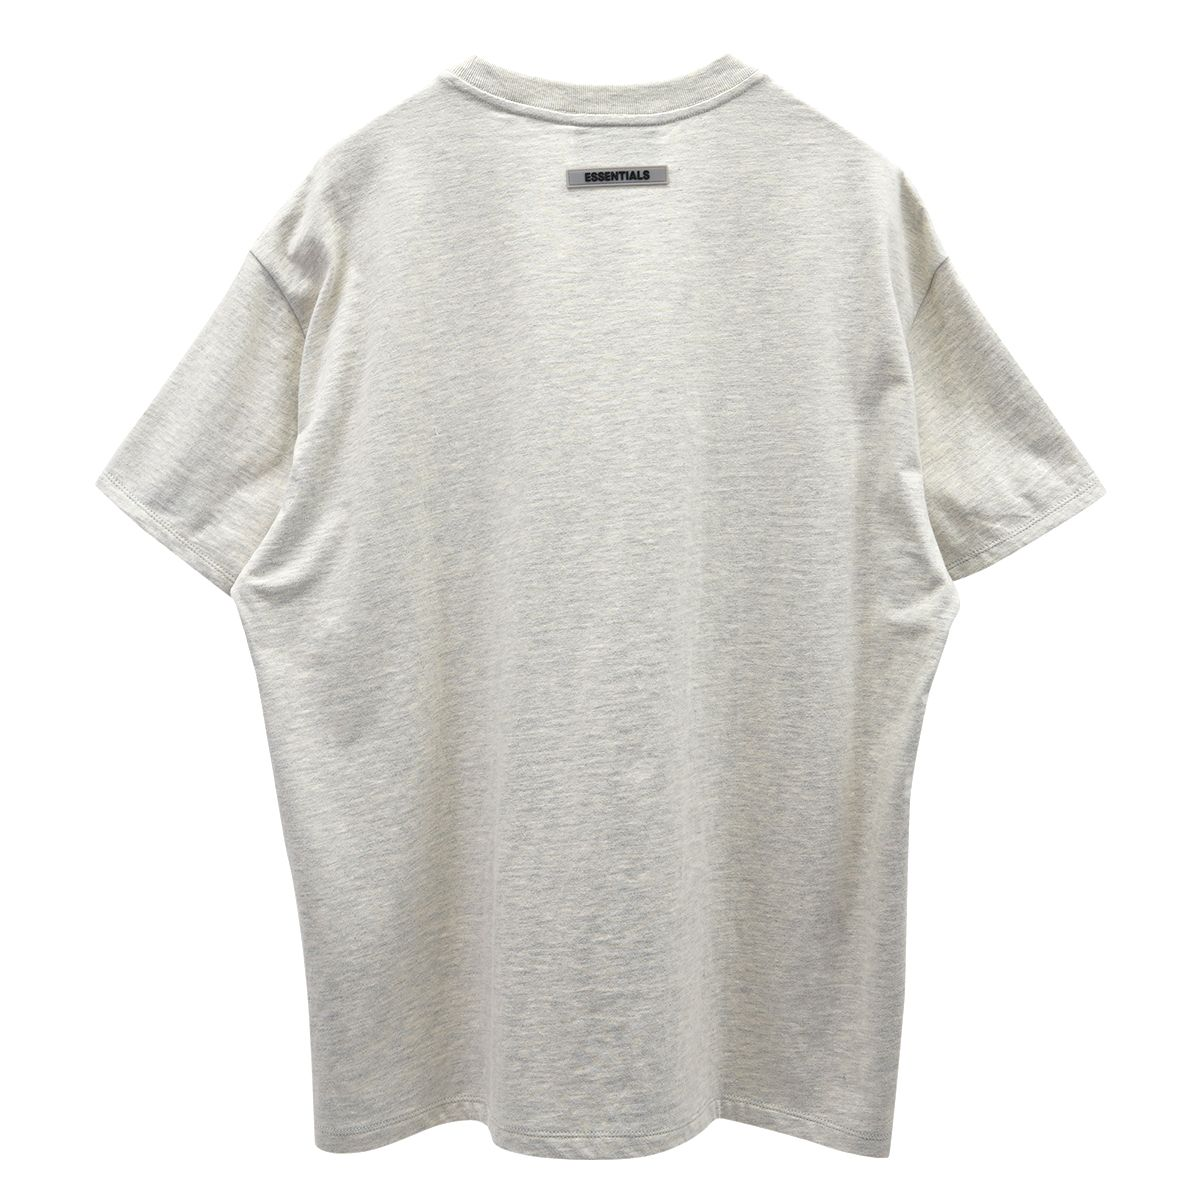 ESSENTIALS HO20 S/S TEE / 242 : OATMEAL